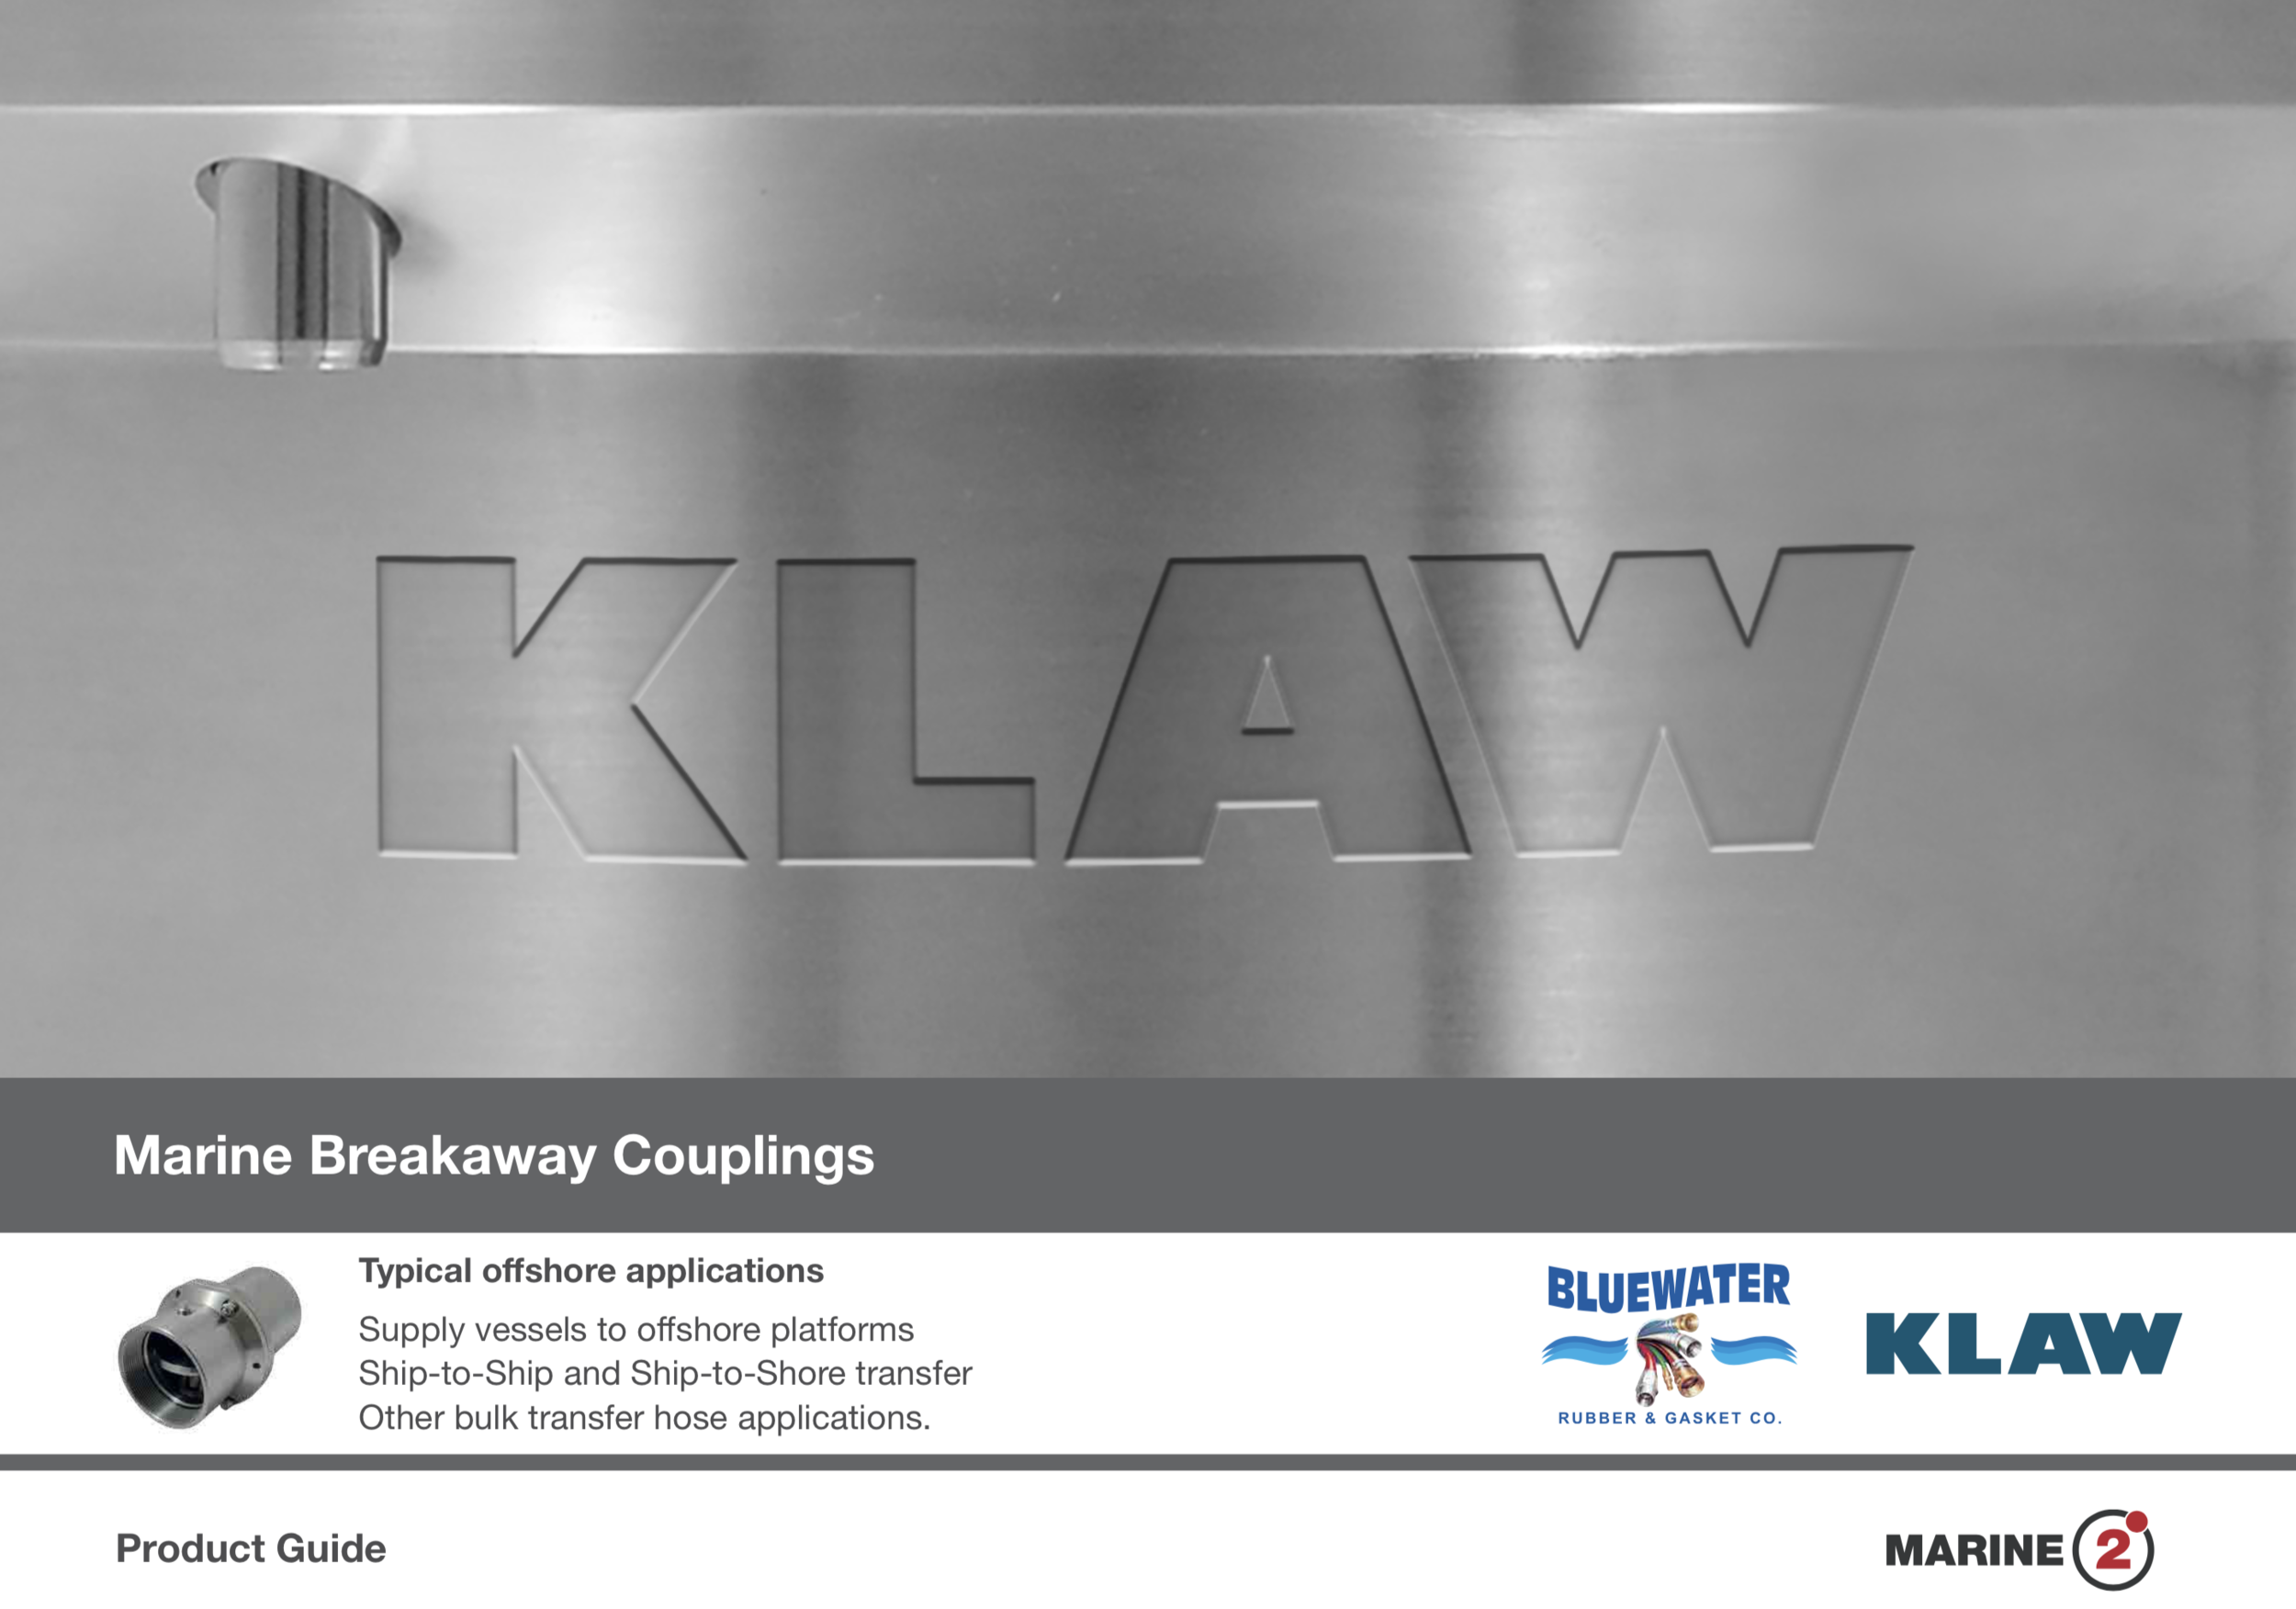 KLAW PRODUCT GUIDE